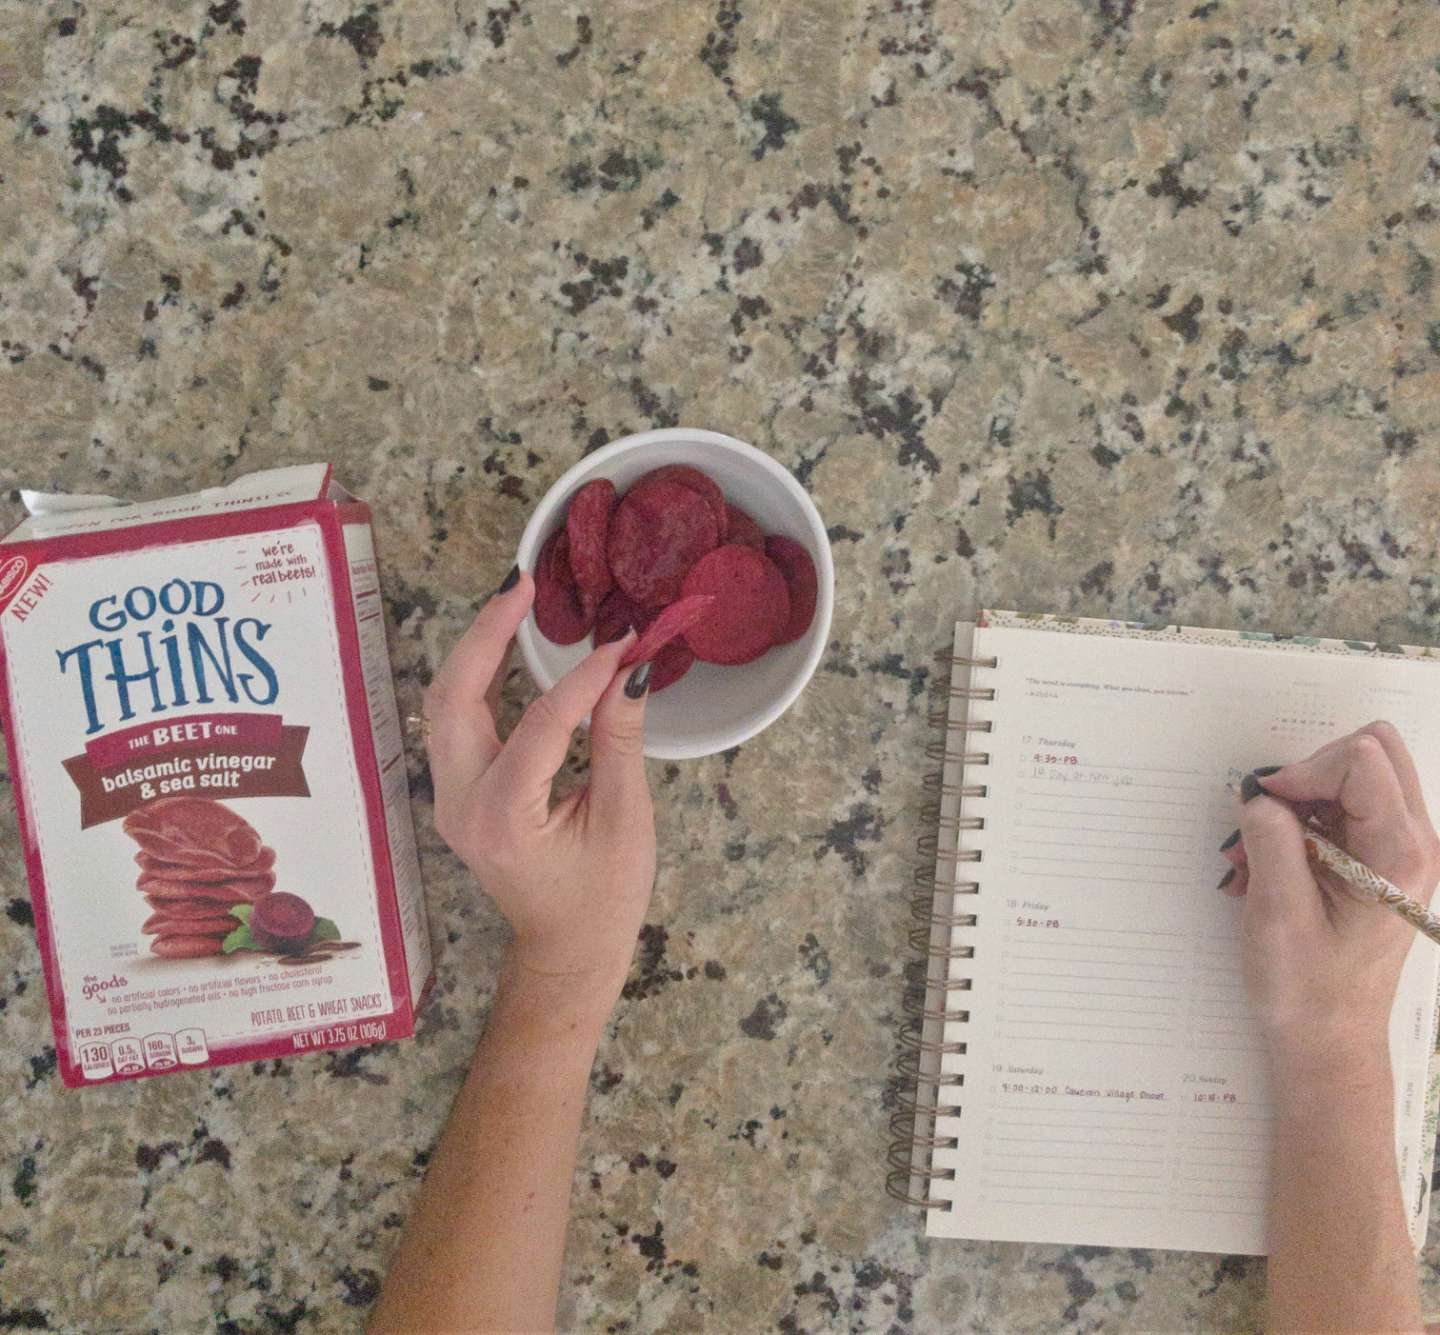 Preparing for Back To School with GOOD THiNS by NC blogger I'm Fixin' To